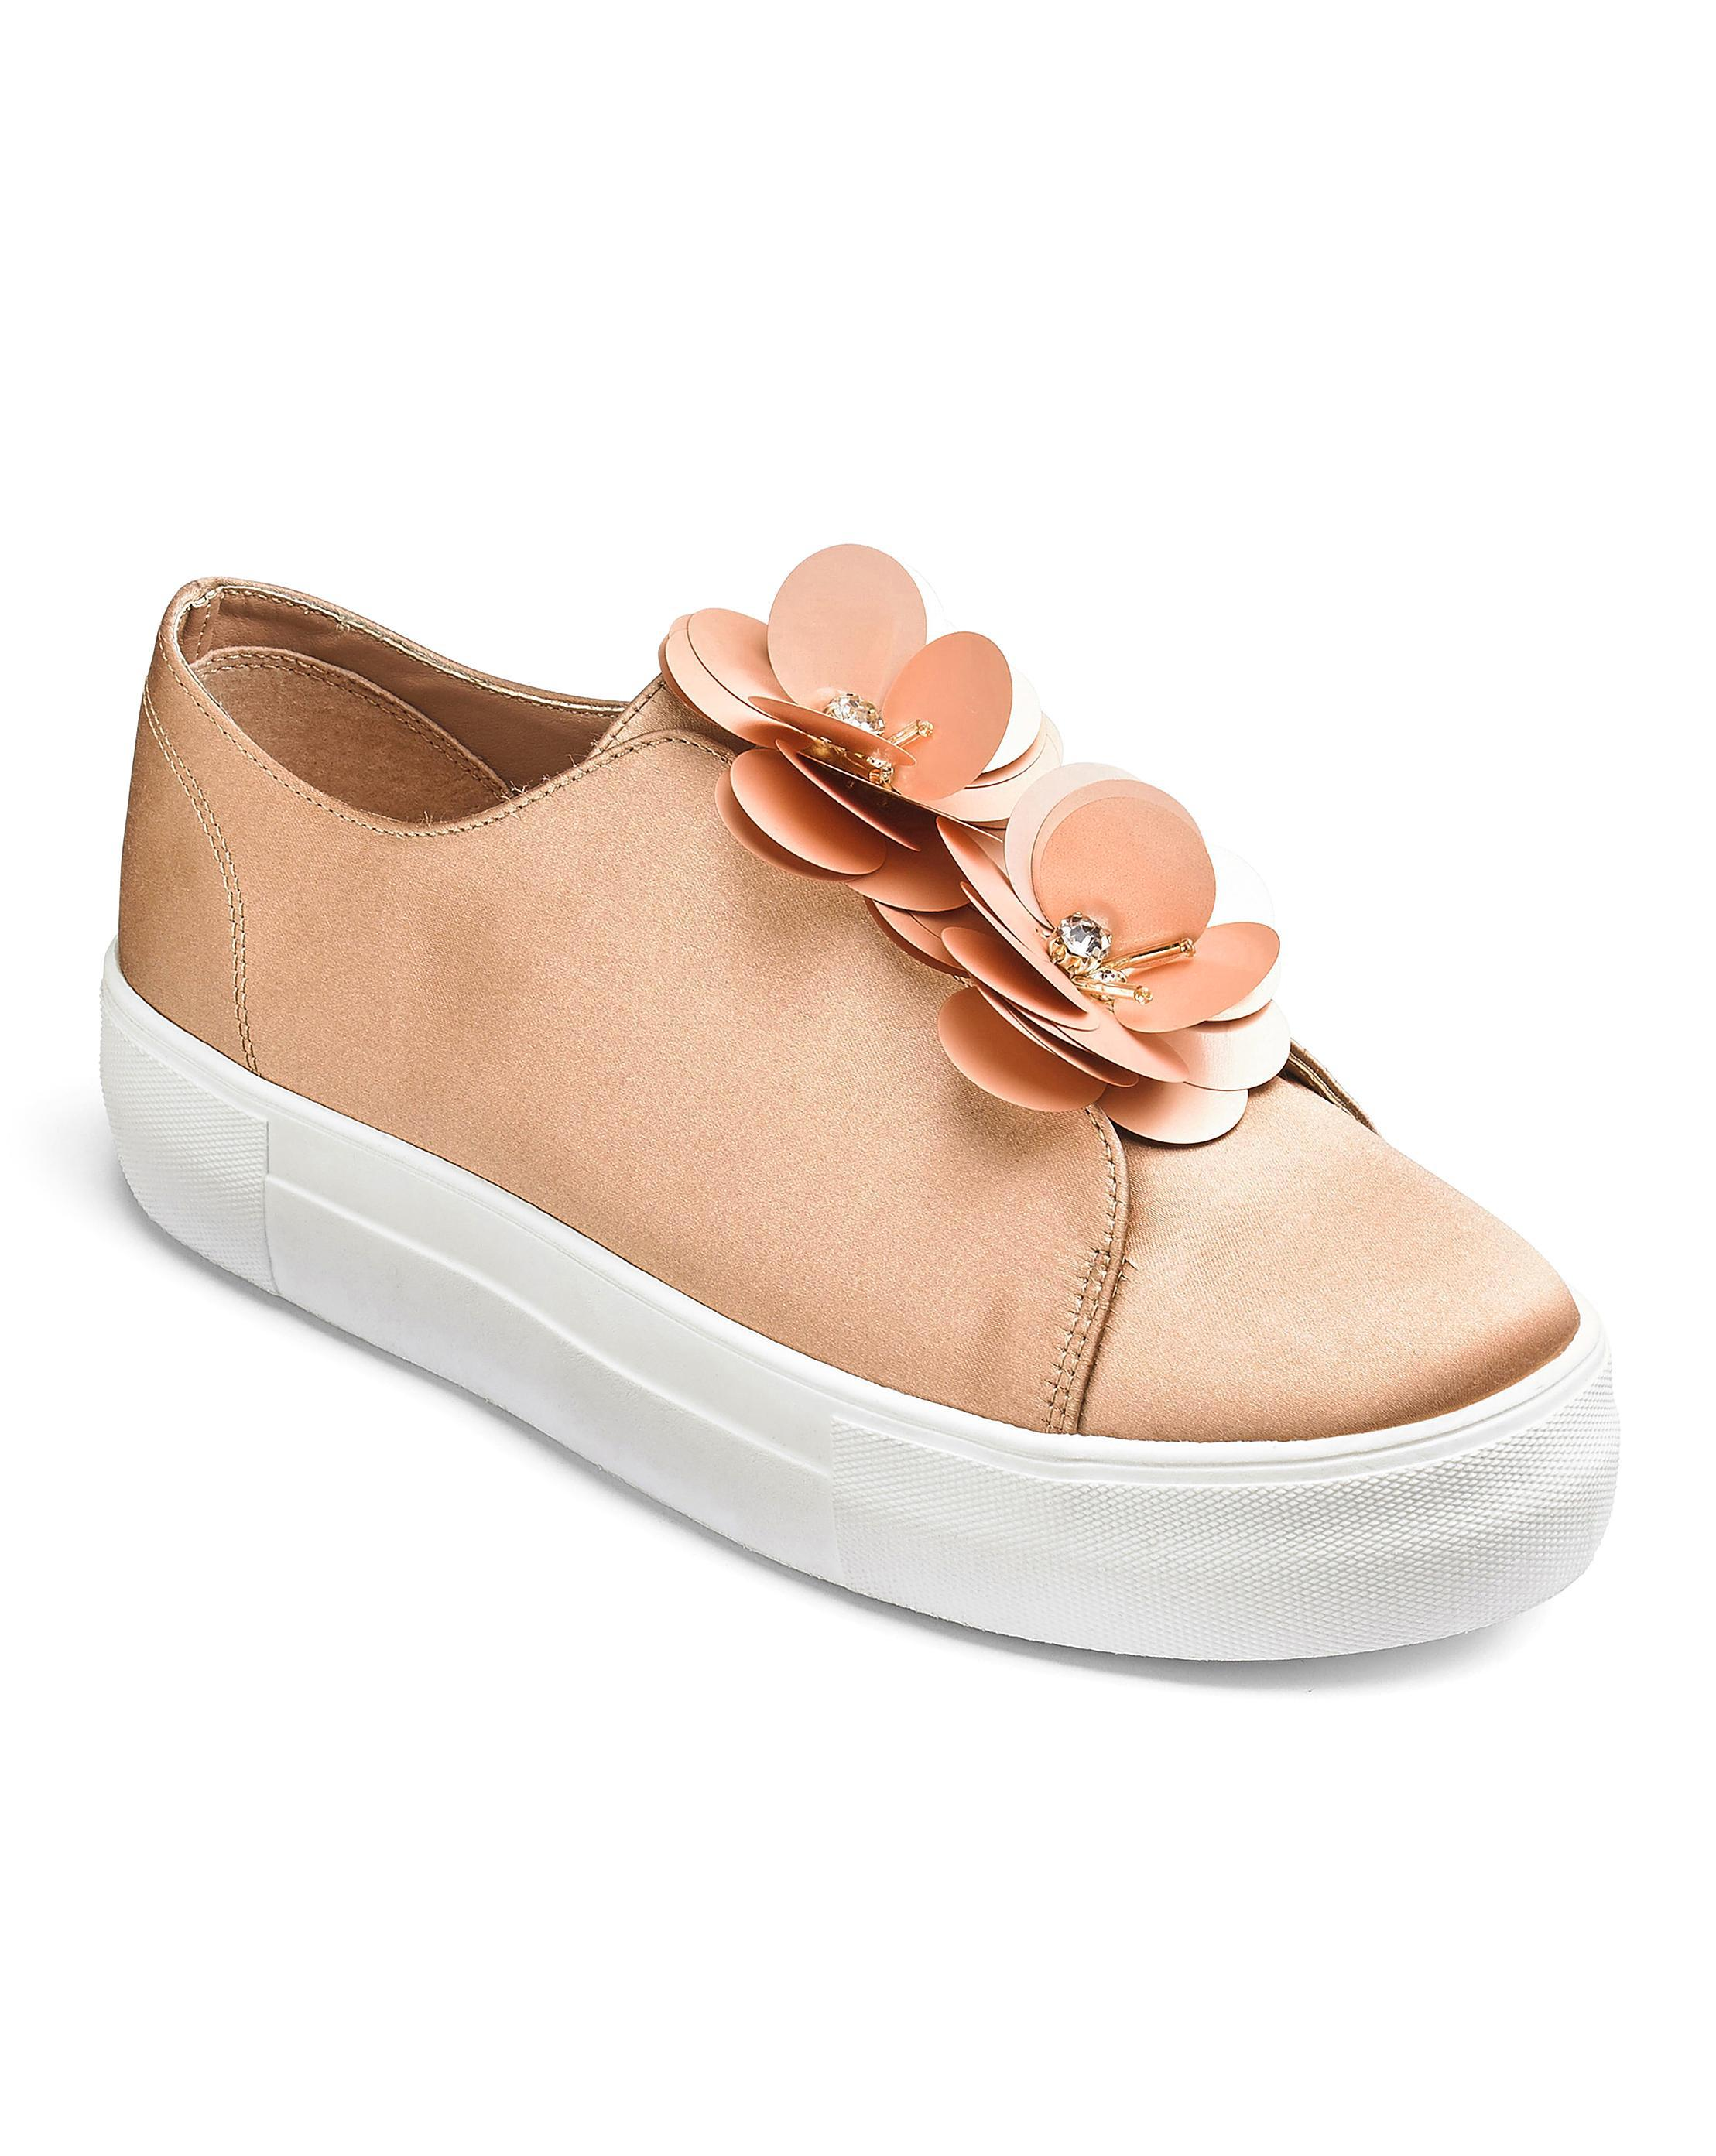 Evie Flower Pumps best place online buy cheap with paypal clearance find great sale ebay 9hZJexyfUo